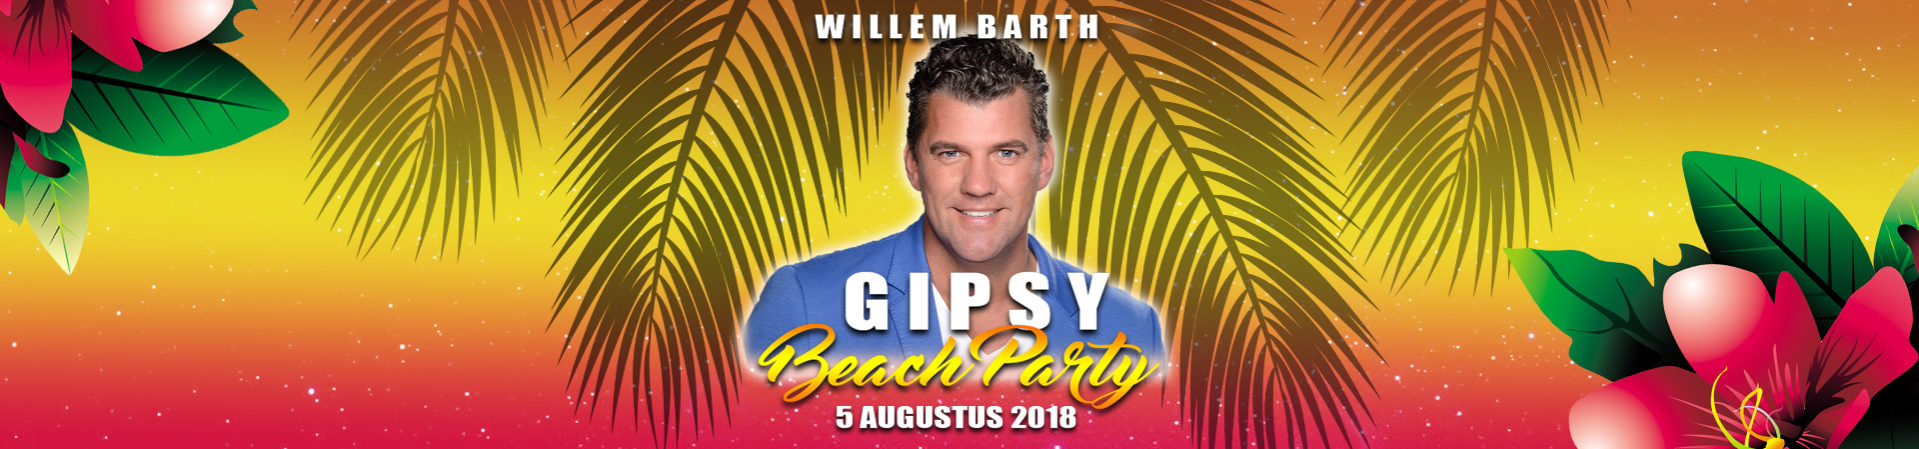 Willem Barth Gipsy Summer Party 2018